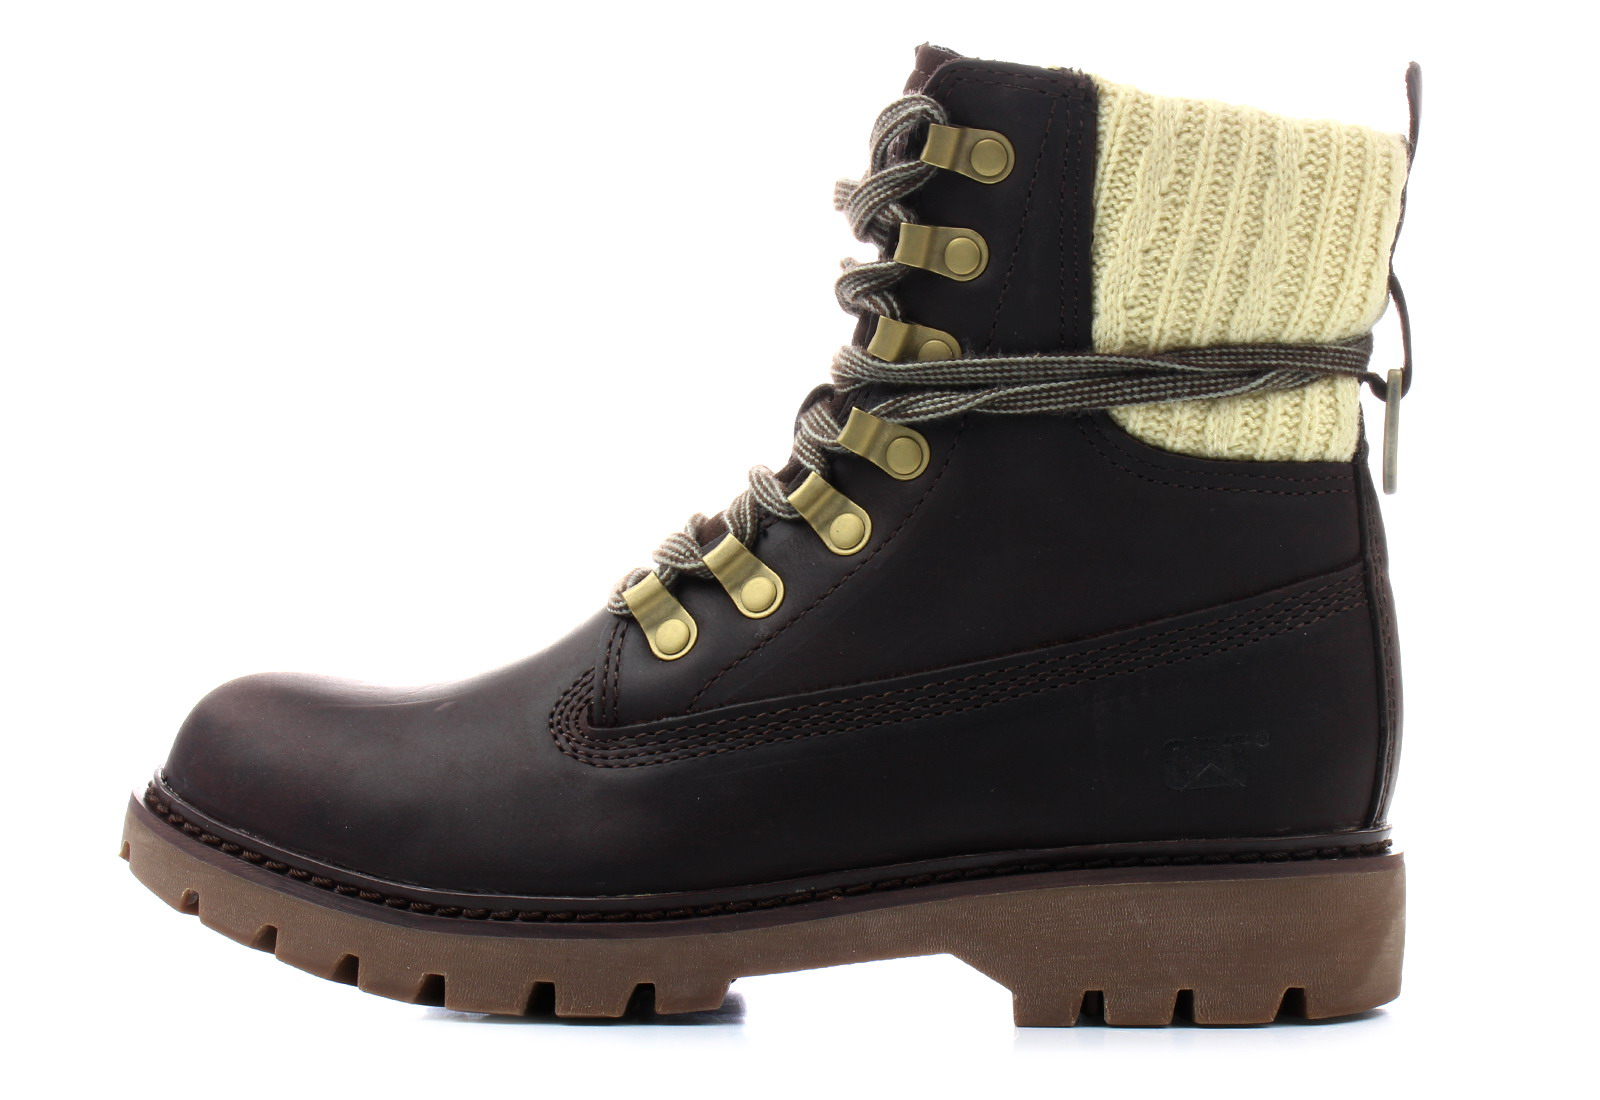 c9b4067fac Cat Boots - Informer - 310552-dbr - Online shop for sneakers, shoes ...